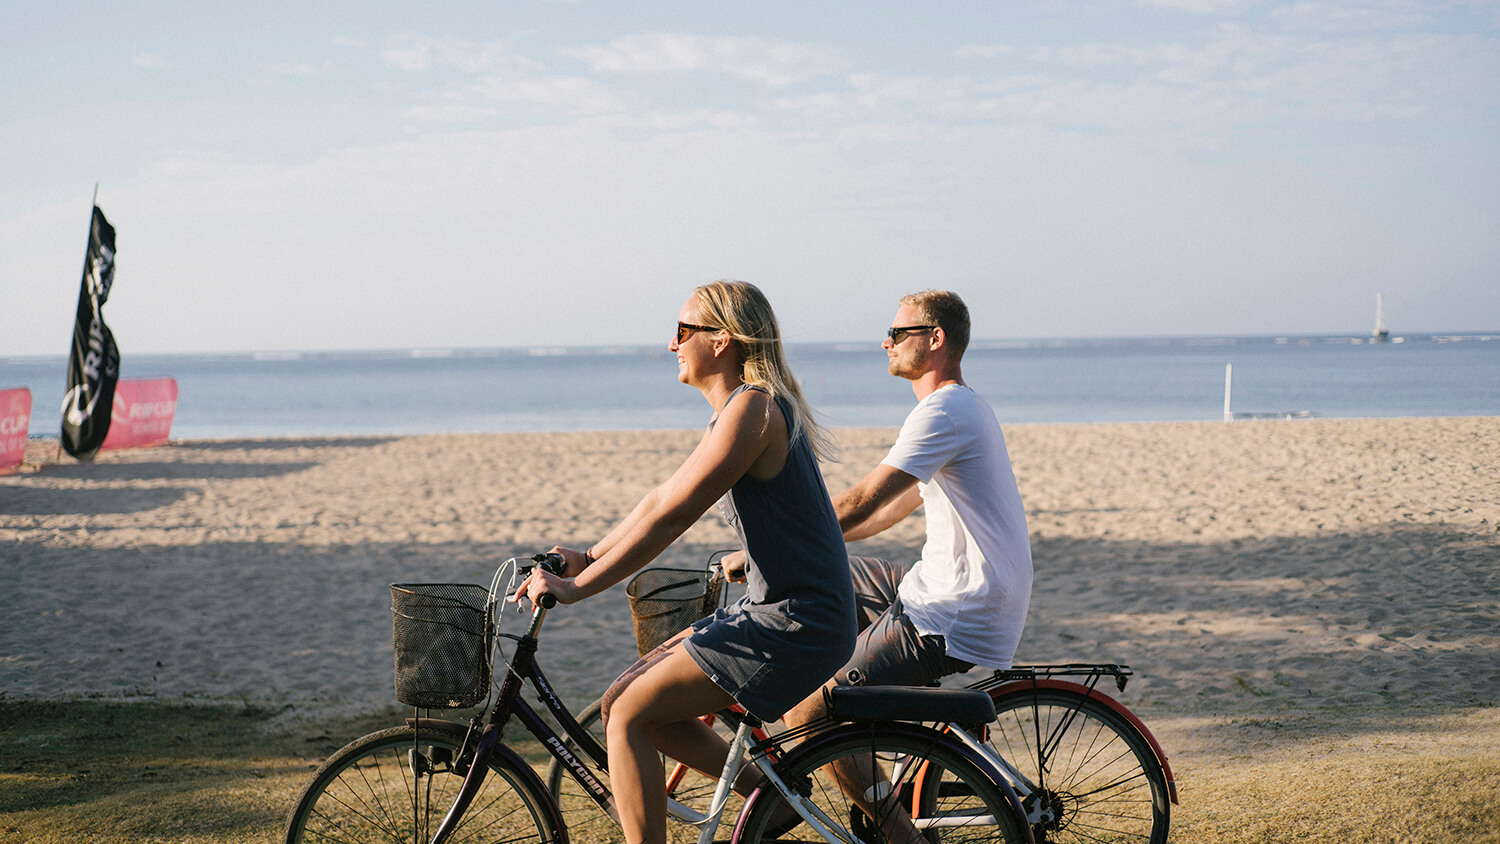 A couple enjoying a bicycle ride in Bali